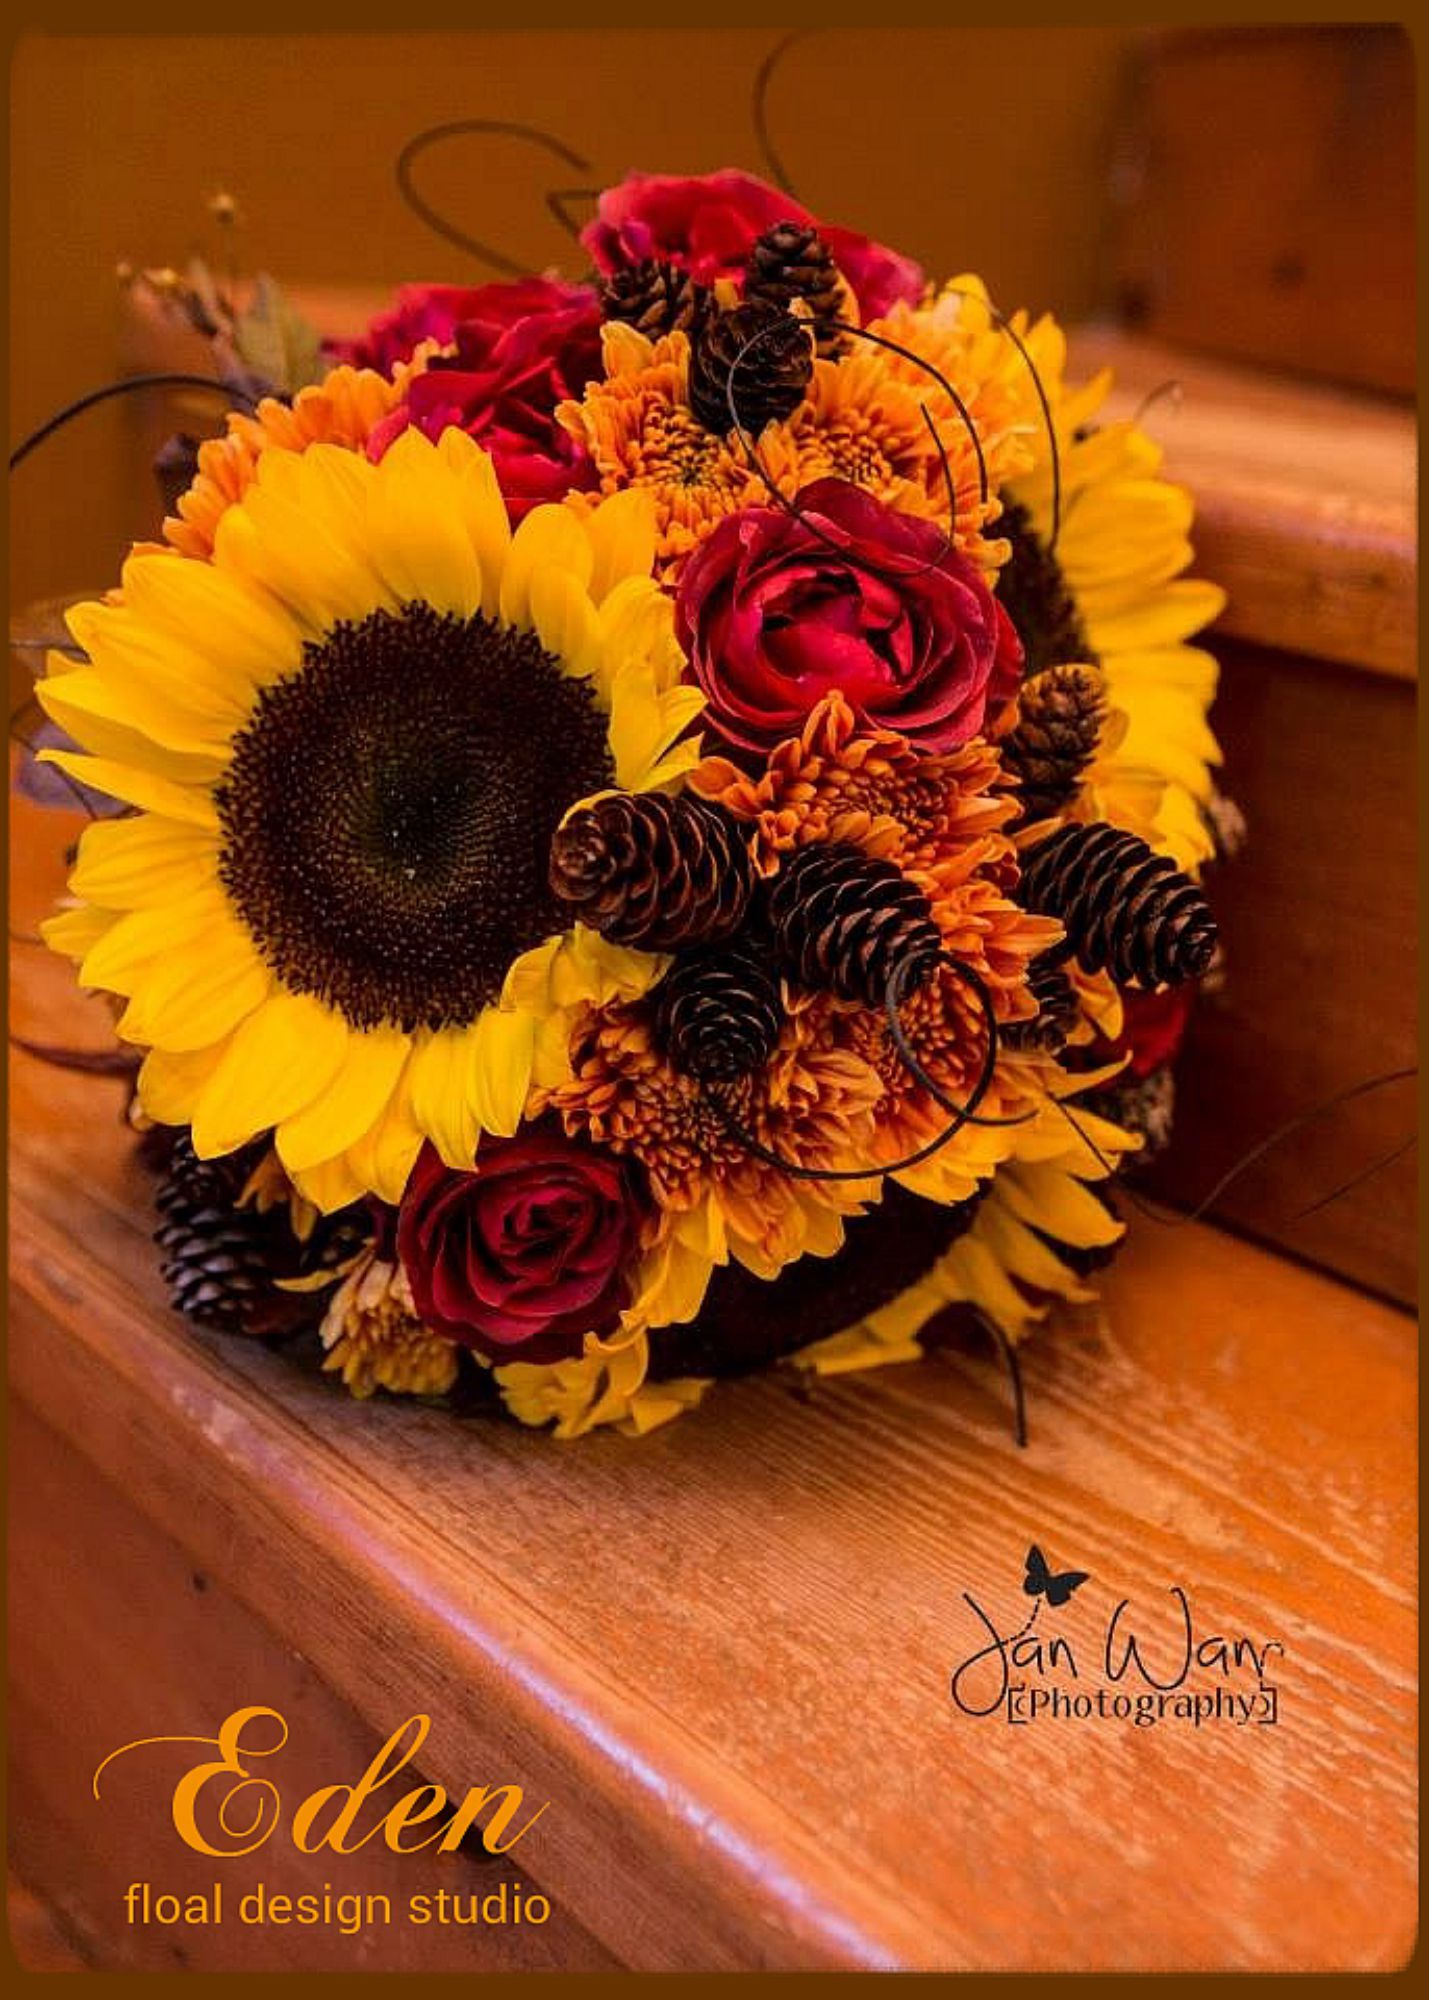 Fall wedding flowers by Carrie Burgess, Eden floral design studio ...